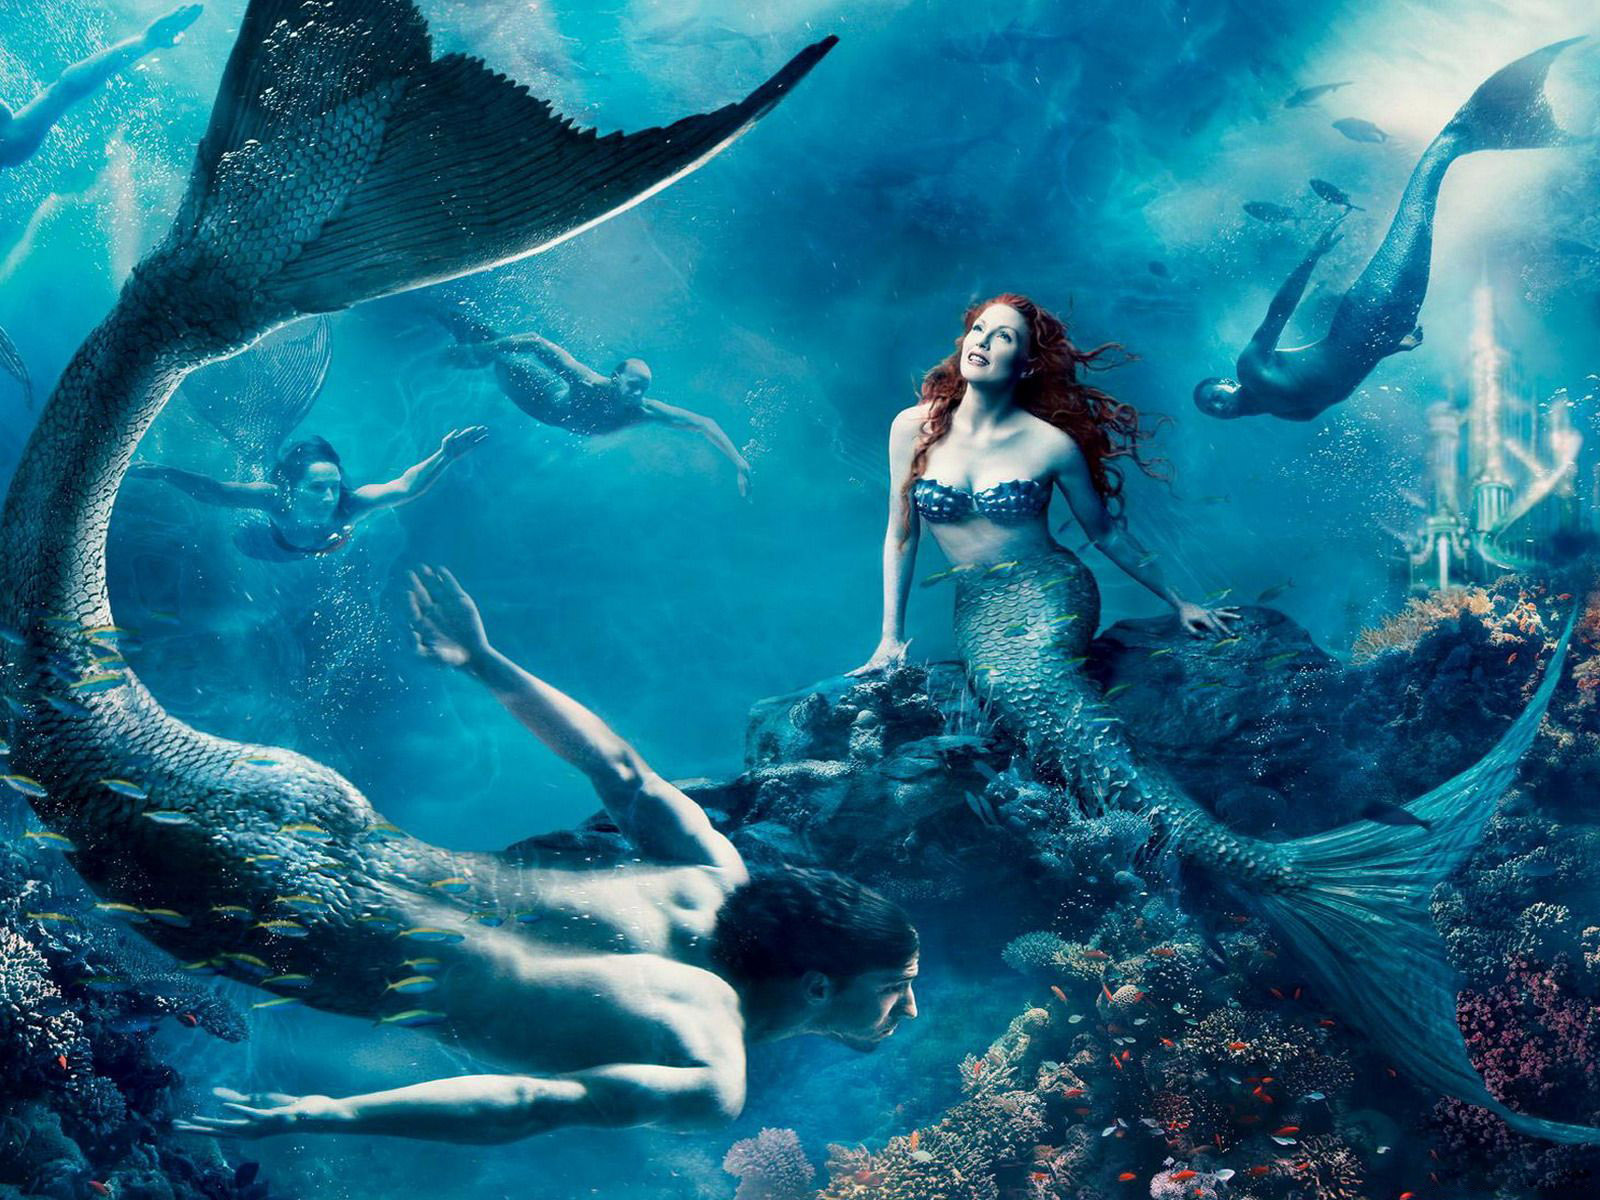 Fantasy Art Mermaid computer desktop wallpapers pictures 1600x1200